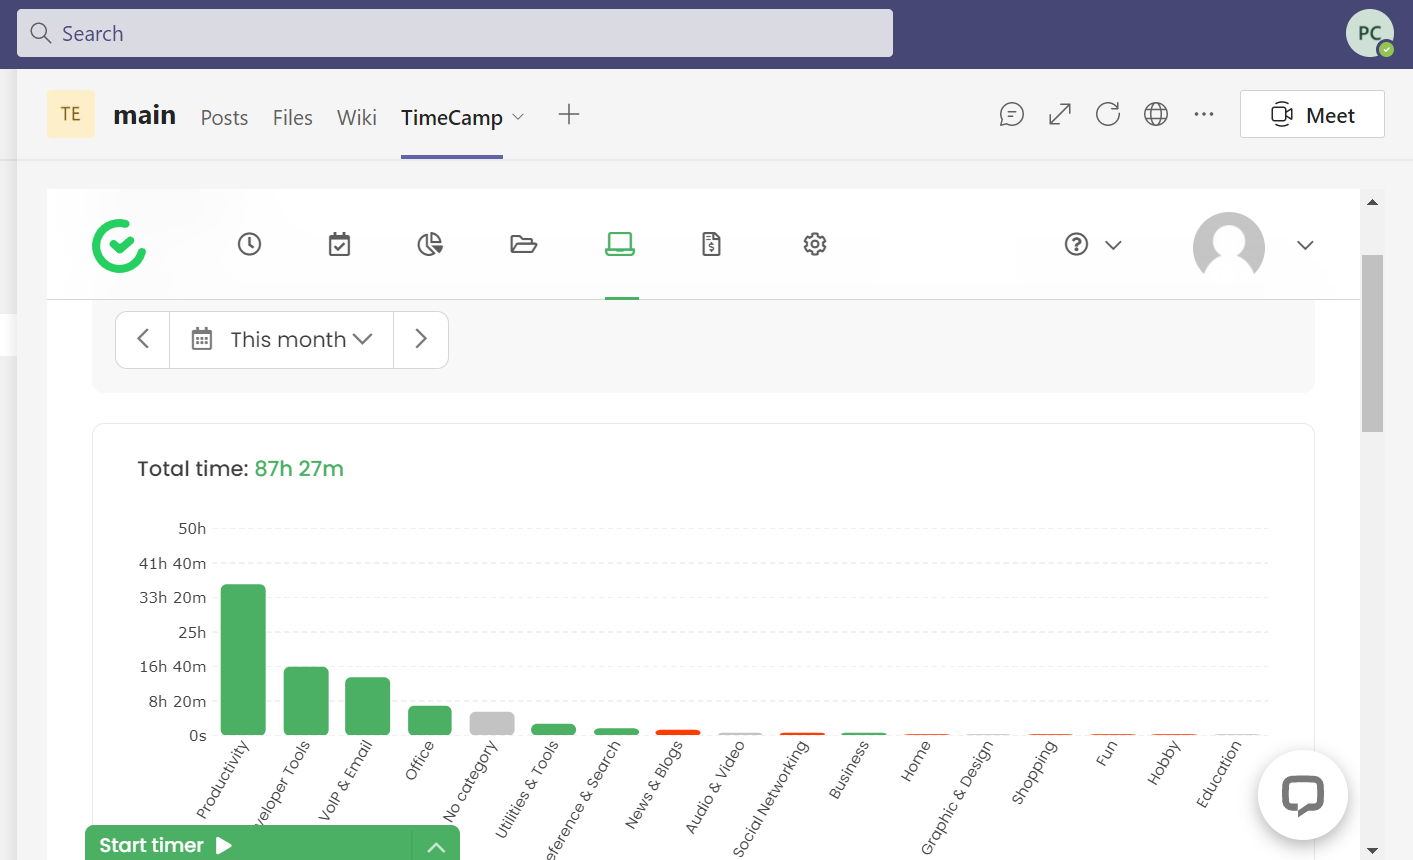 Microsoft Teams dashboard with TimeCamp integration